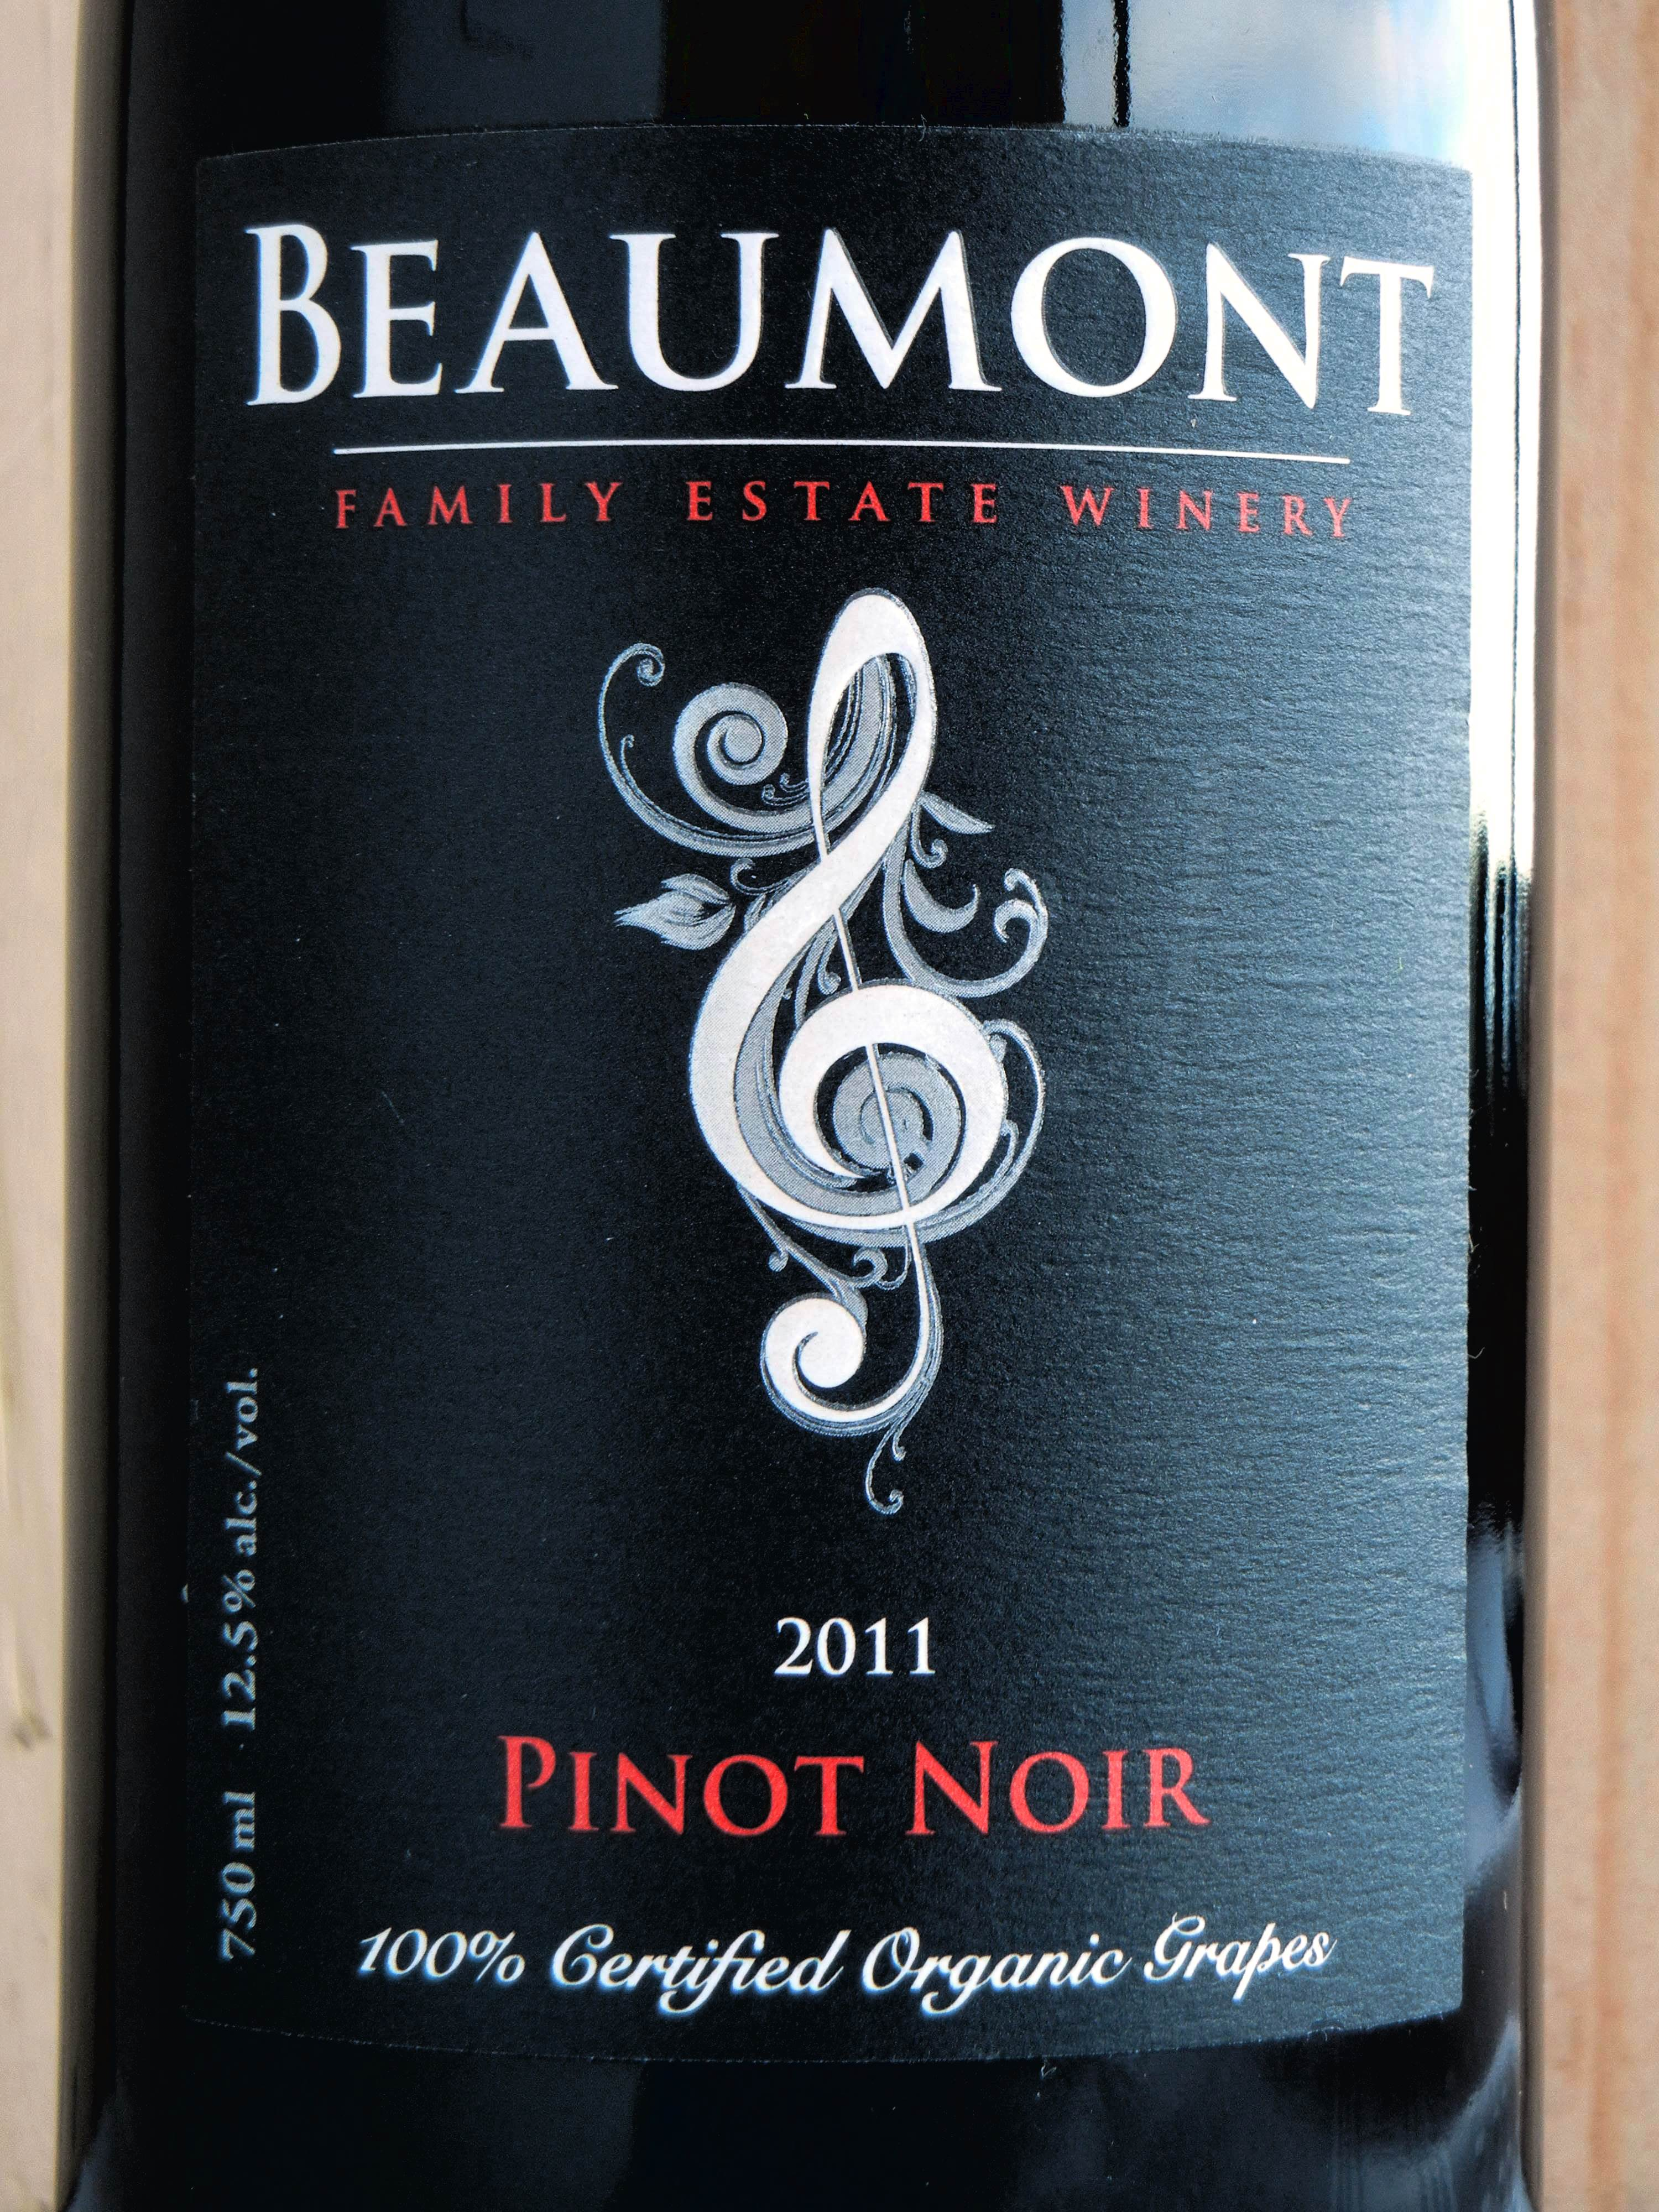 Beaumont Pinot Noir 2011 Label - BC Pinot Noir Tasting Review 13